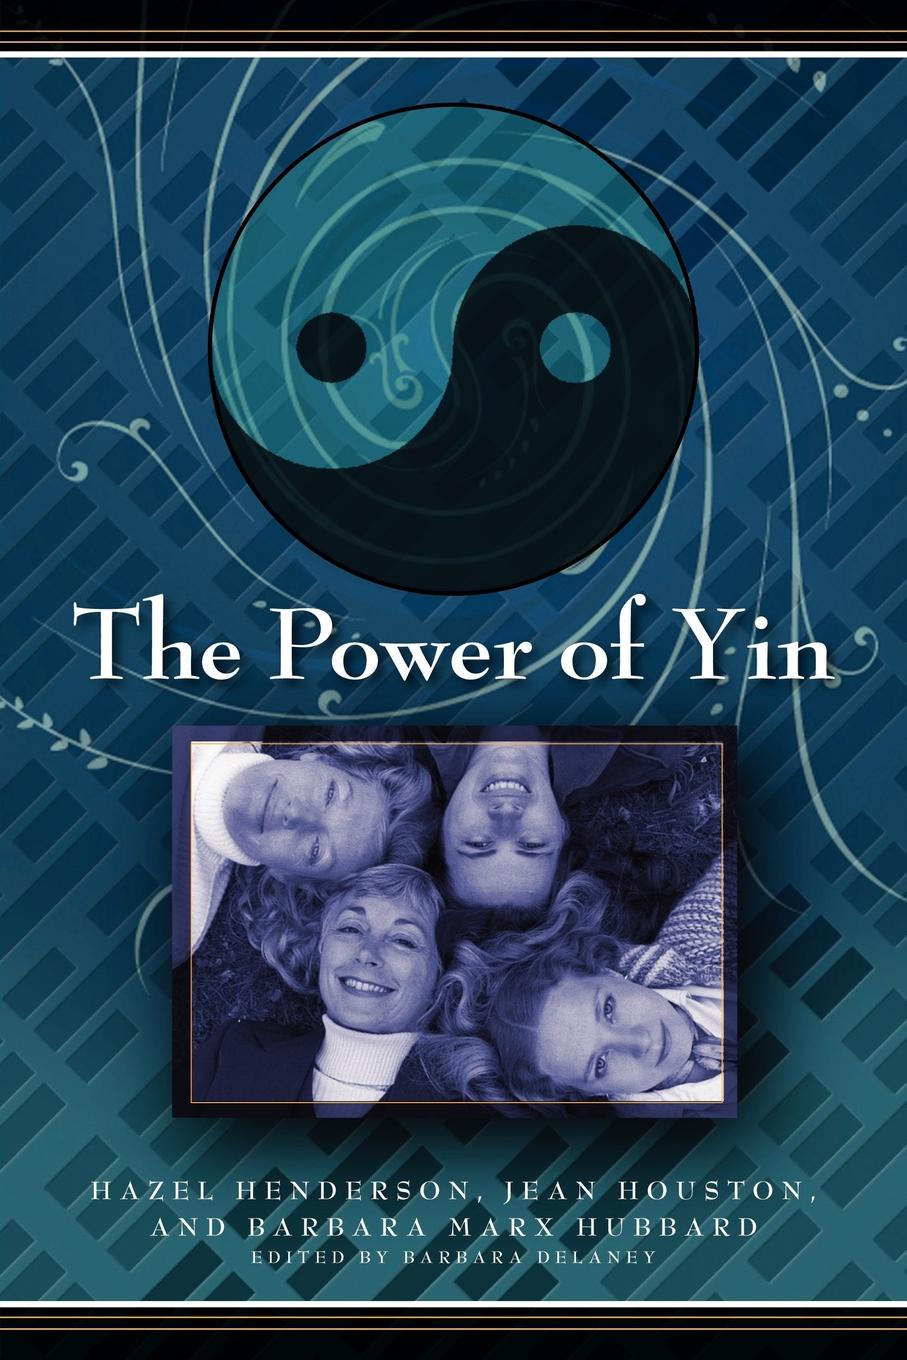 Hazel Henderson, Jean Houston, Barbara Marx-Hubbard The Power of Yin. Celebrating Female Consciousness carprie new replacement atx motherboard switch on off reset power cable for pc computer 17aug23 dropshipping